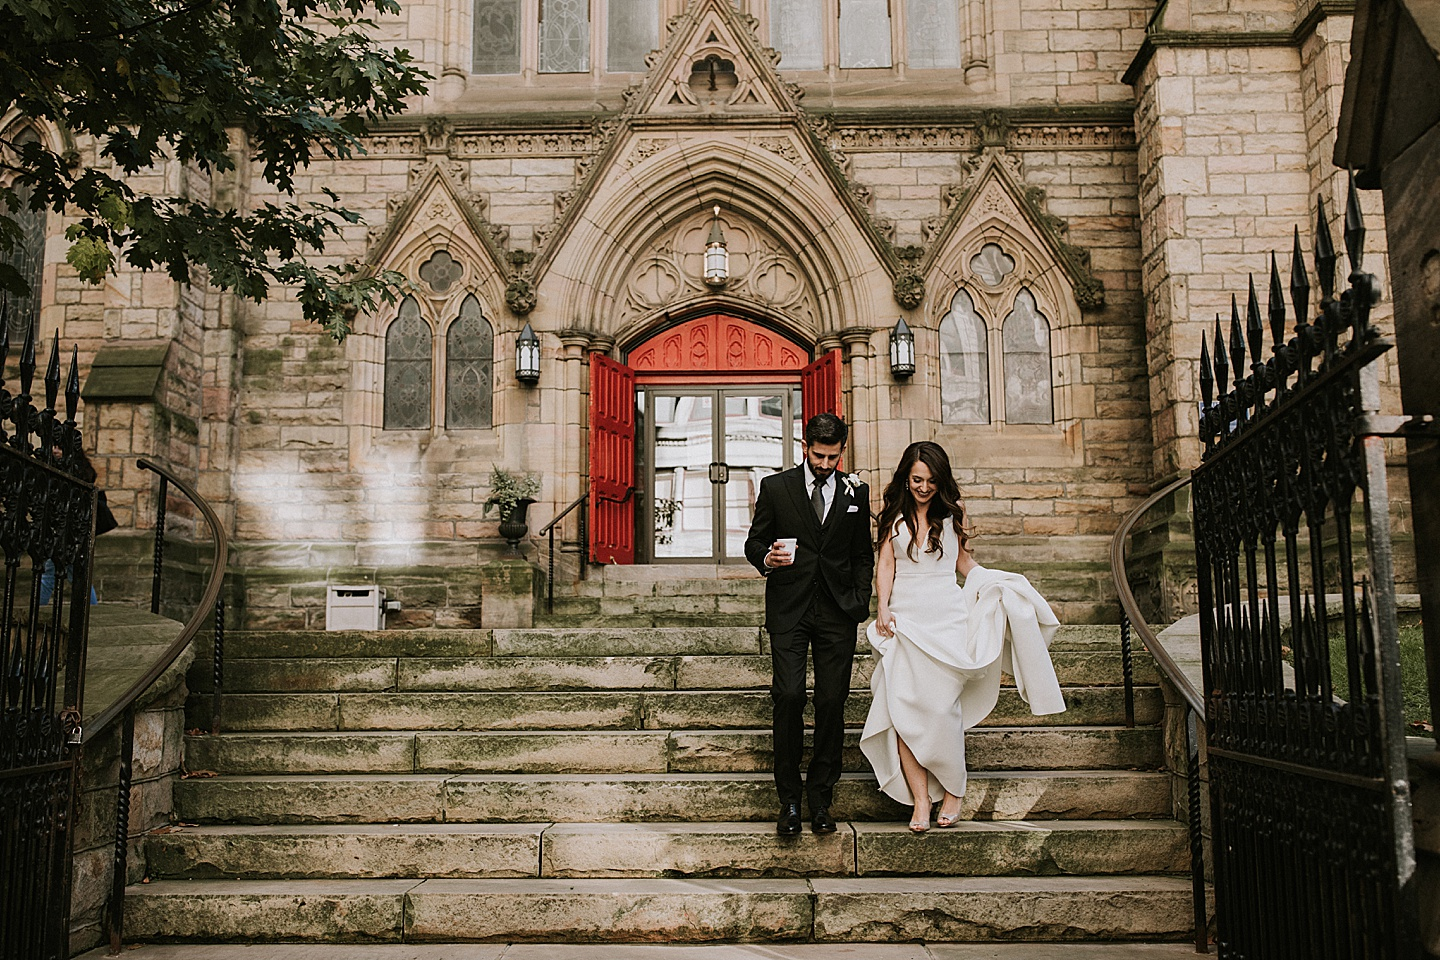 Couple walking down the stairs of the church